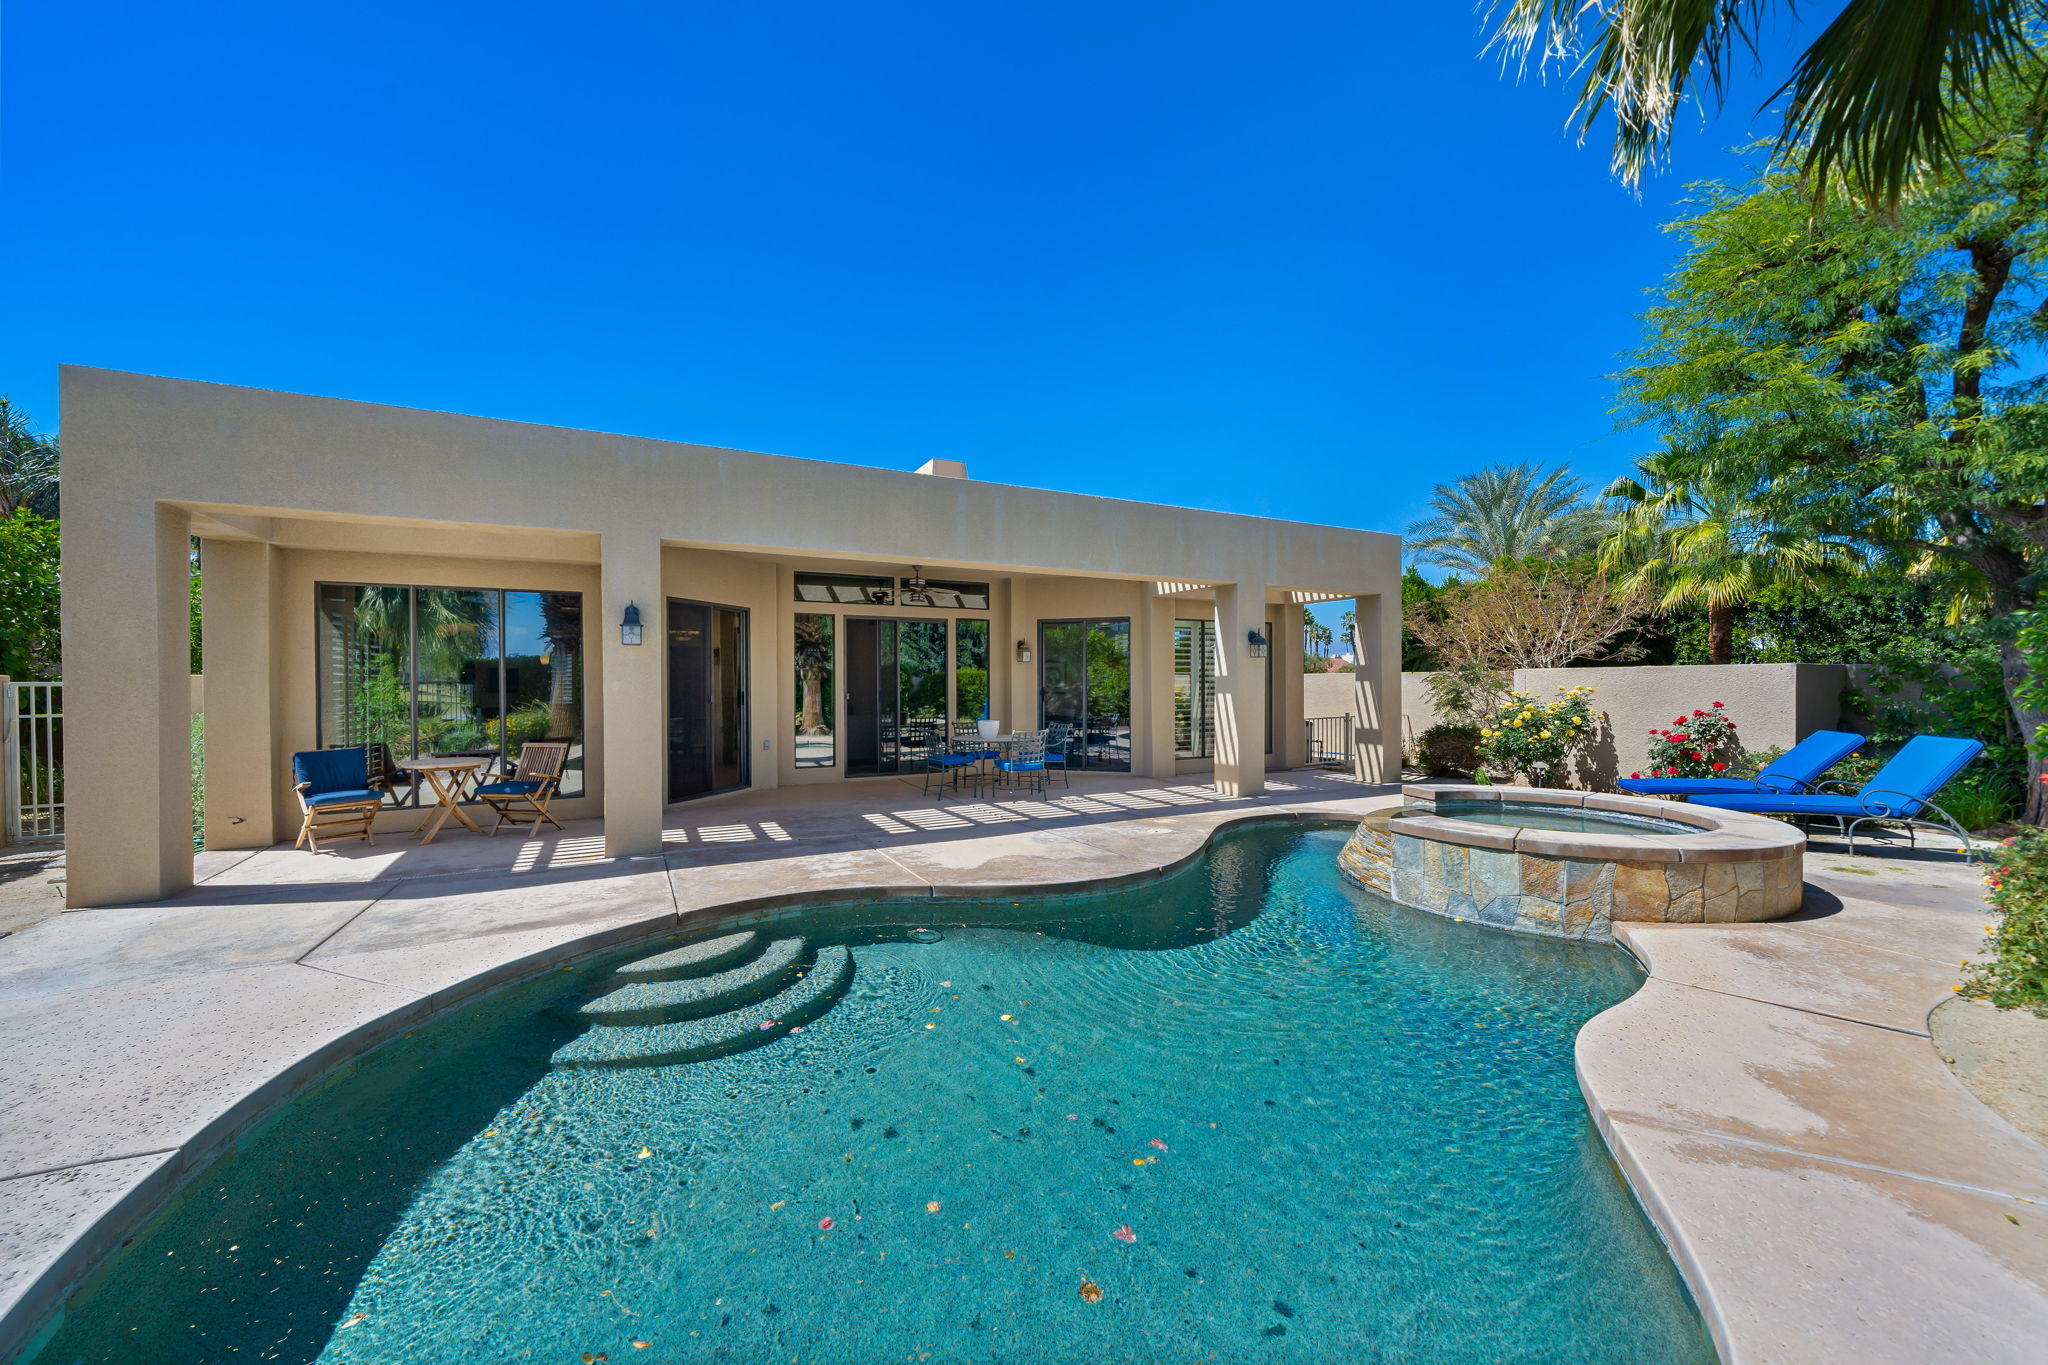 Contemporary with Open Great Room Floor Plan and Multiple Private Outdoor Spaces.  Corner Lot with  Side Drive and Beautiful Palms at Entry.  Enter through a gated south facing courtyard with fountain, outdoor living space and custom landscaping.   Entry Hall Tower makes for dramatic entrance to an Open Great Room with Stacked Stone Fireplace, Entertainer's Bar, Dining and Walls of Glass opening to the Pool Terrace making for a light and bright home. Gourmet Kitchen with Stainless Appliances including Thermador Cooktop and Ovens, breakfast bar open to Great Room and a Morning Room with french doors to the courtyard. Master Suite features a stacked stone fireplace, retreat area, sliders to the pool terrace, a marble filled spa bath and double walk-in closets. A guest bedroom with ensuite bath and an office/bedroom in the house and a Casita with stacked stone fireplace and refreshment center provide great space for family and friends or office/gym space. Outside is an expansive and private backyard with pool/spa,  and covered outdoor living room.  Solar equipped with owned solar and updated flooring.    Come home to your Desert Retreat!